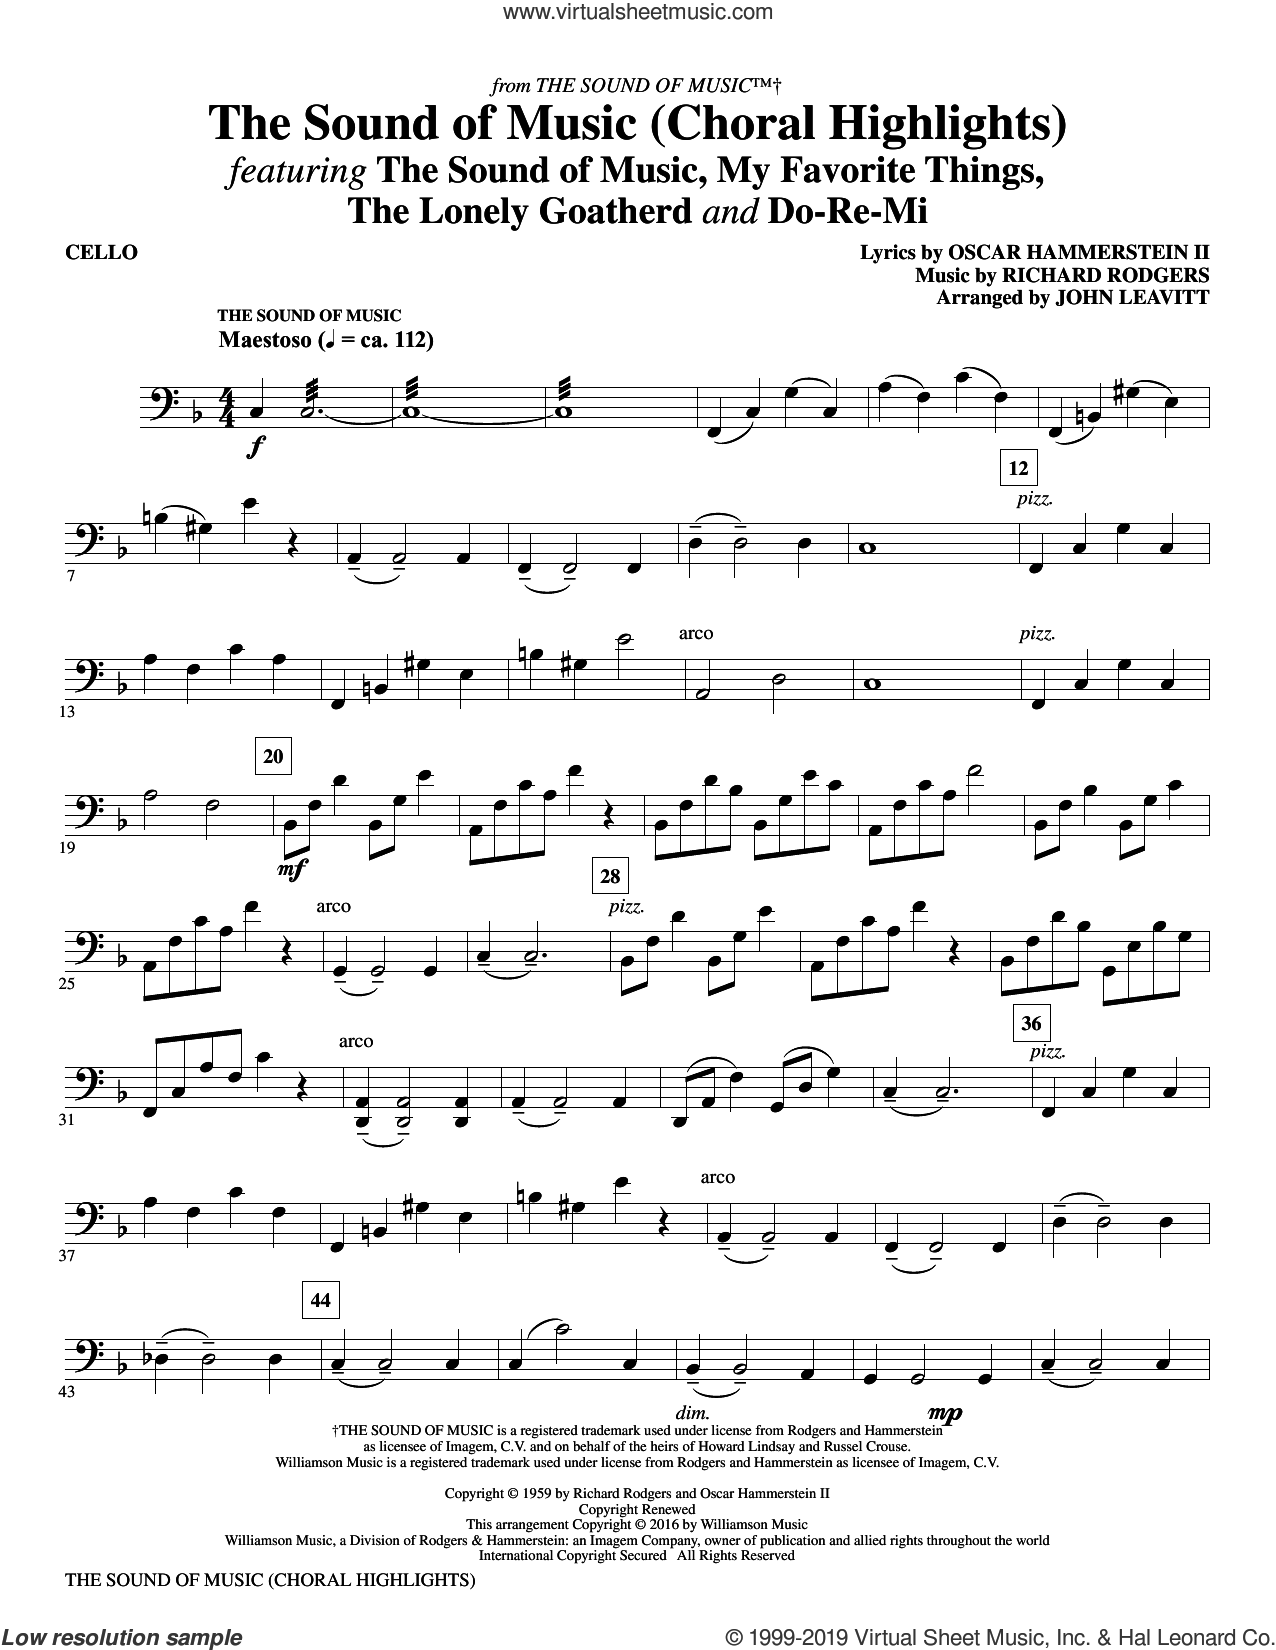 The Sound Of Music (Choral Highlights) (arr. John Leavitt) sheet music for orchestra/band (cello) by Rodgers & Hammerstein, John Leavitt, Oscar II Hammerstein and Richard Rodgers, intermediate skill level